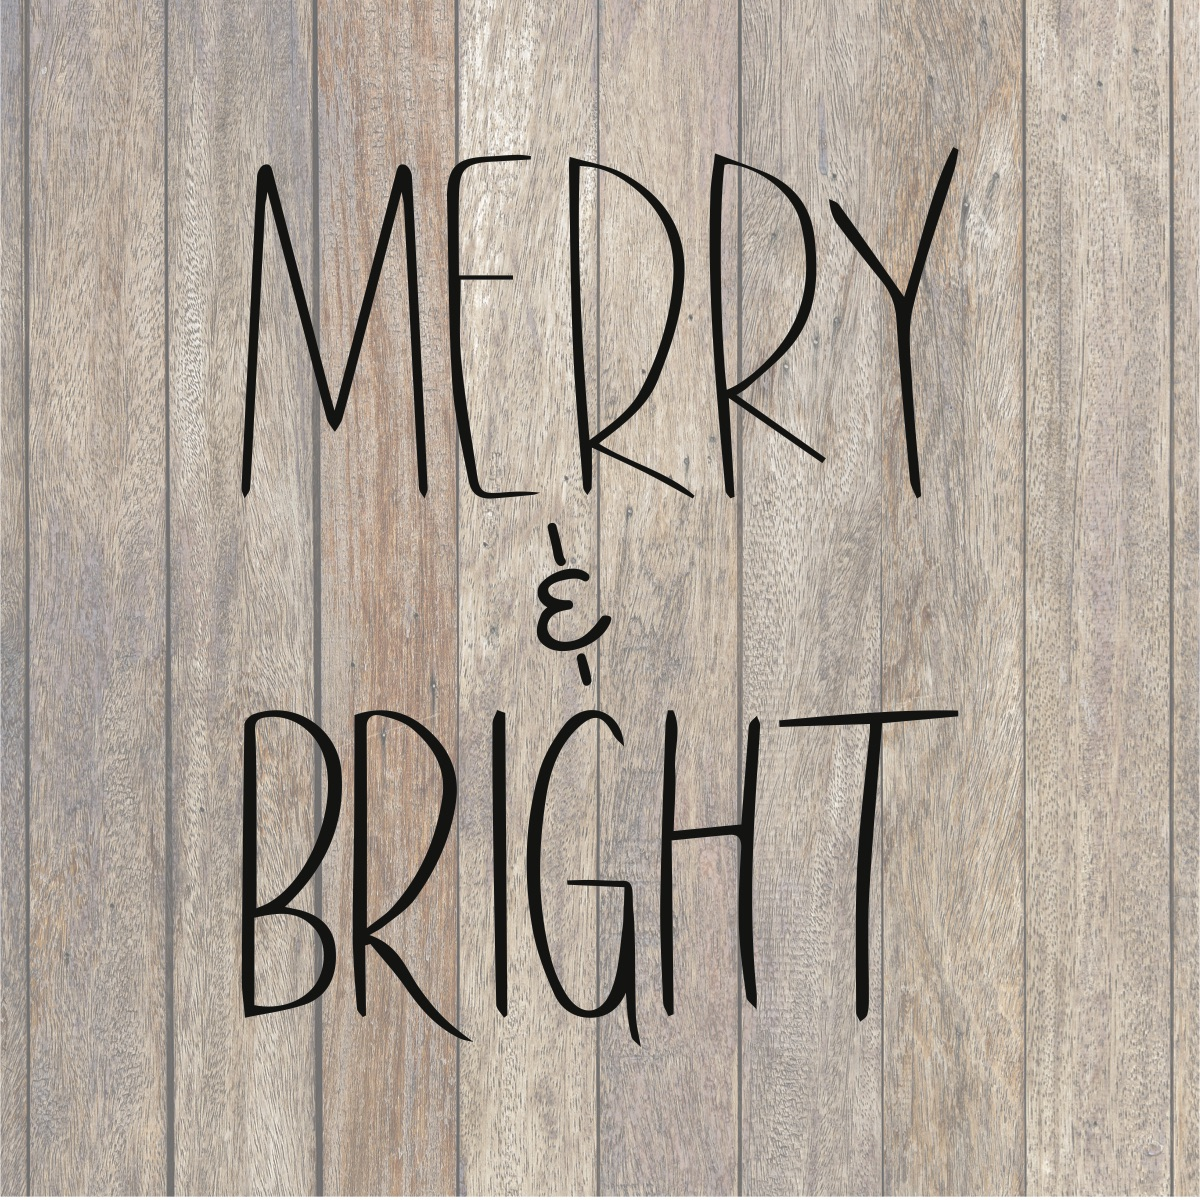 Merry Bright Svg File Holiday Christmas Hand Lettered